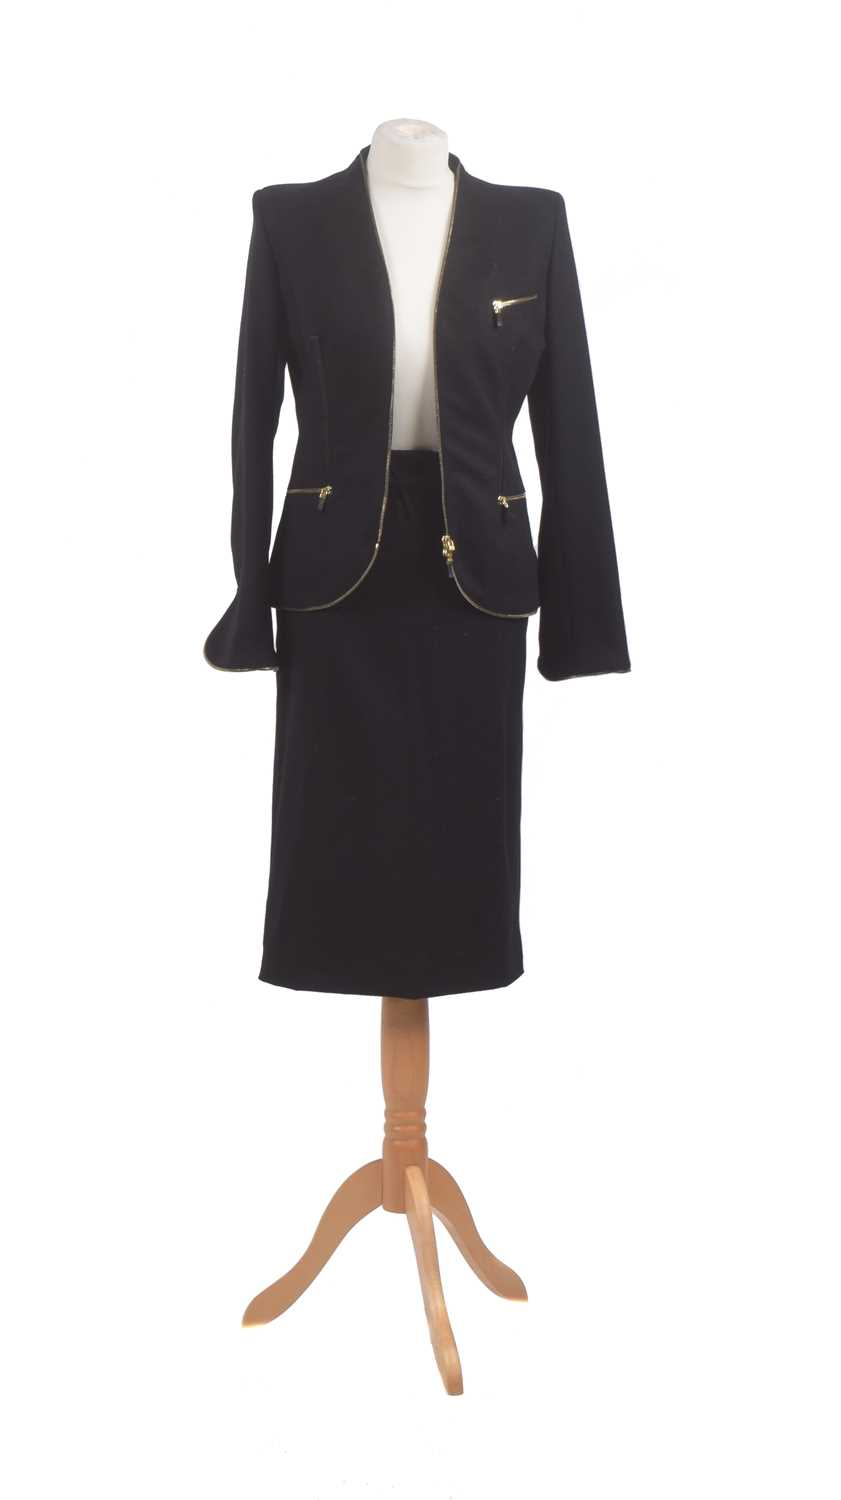 A wool two-piece suit by Alexander McQueen, comprising a mid-length skirt and jacket with gold tone zip detailing, smooth leather accents and black satin lining, size 42.